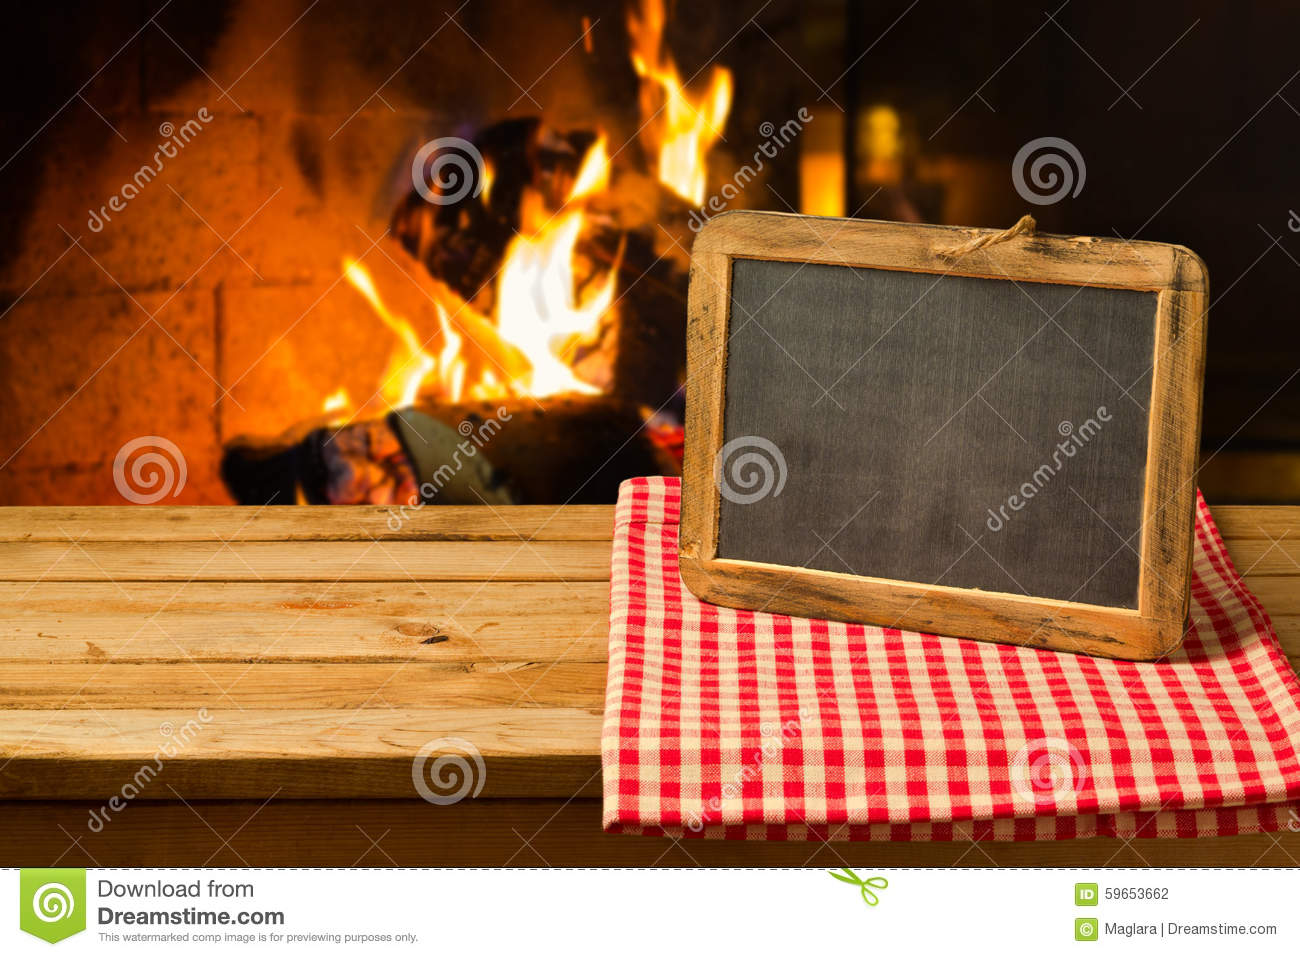 chalkboard on wooden table over fireplace background winter and